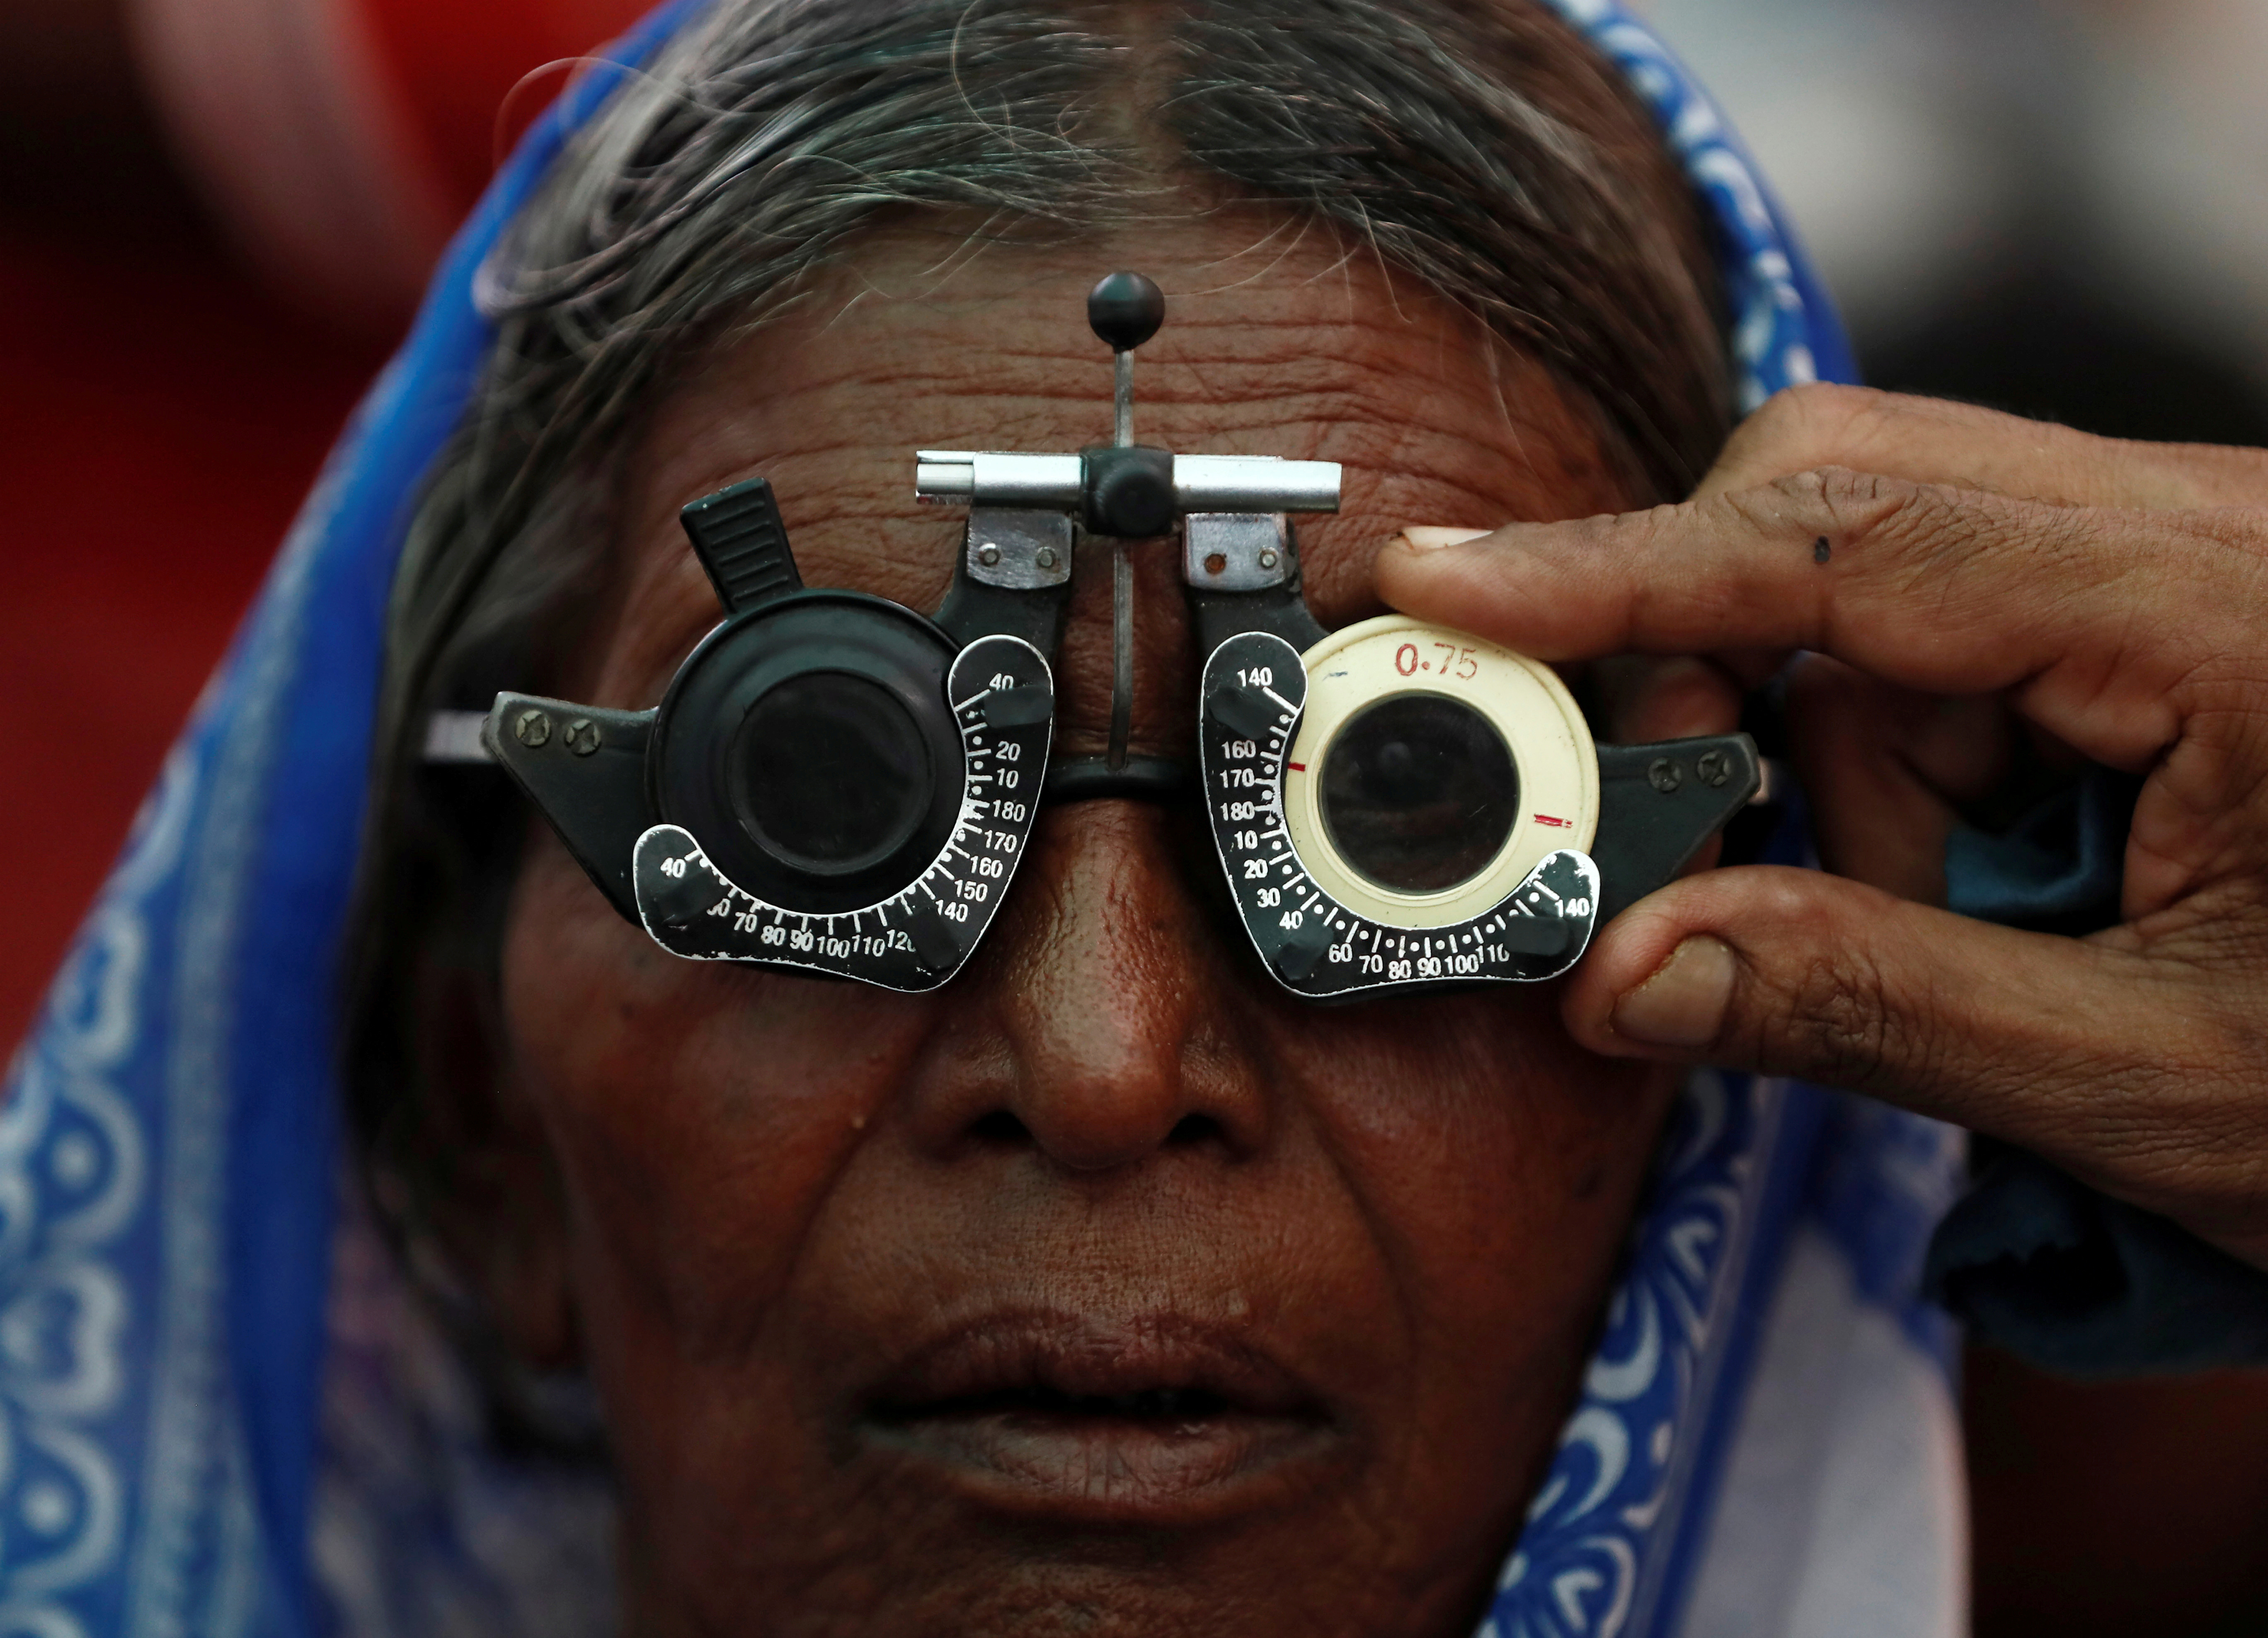 A woman gets her eyes tested at a free eye-care camp on the occasion of Indian politician Babasaheb Ambedkar's death anniversary in Mumbai, India, December 6, 2019. REUTERS/Francis Mascarenhas